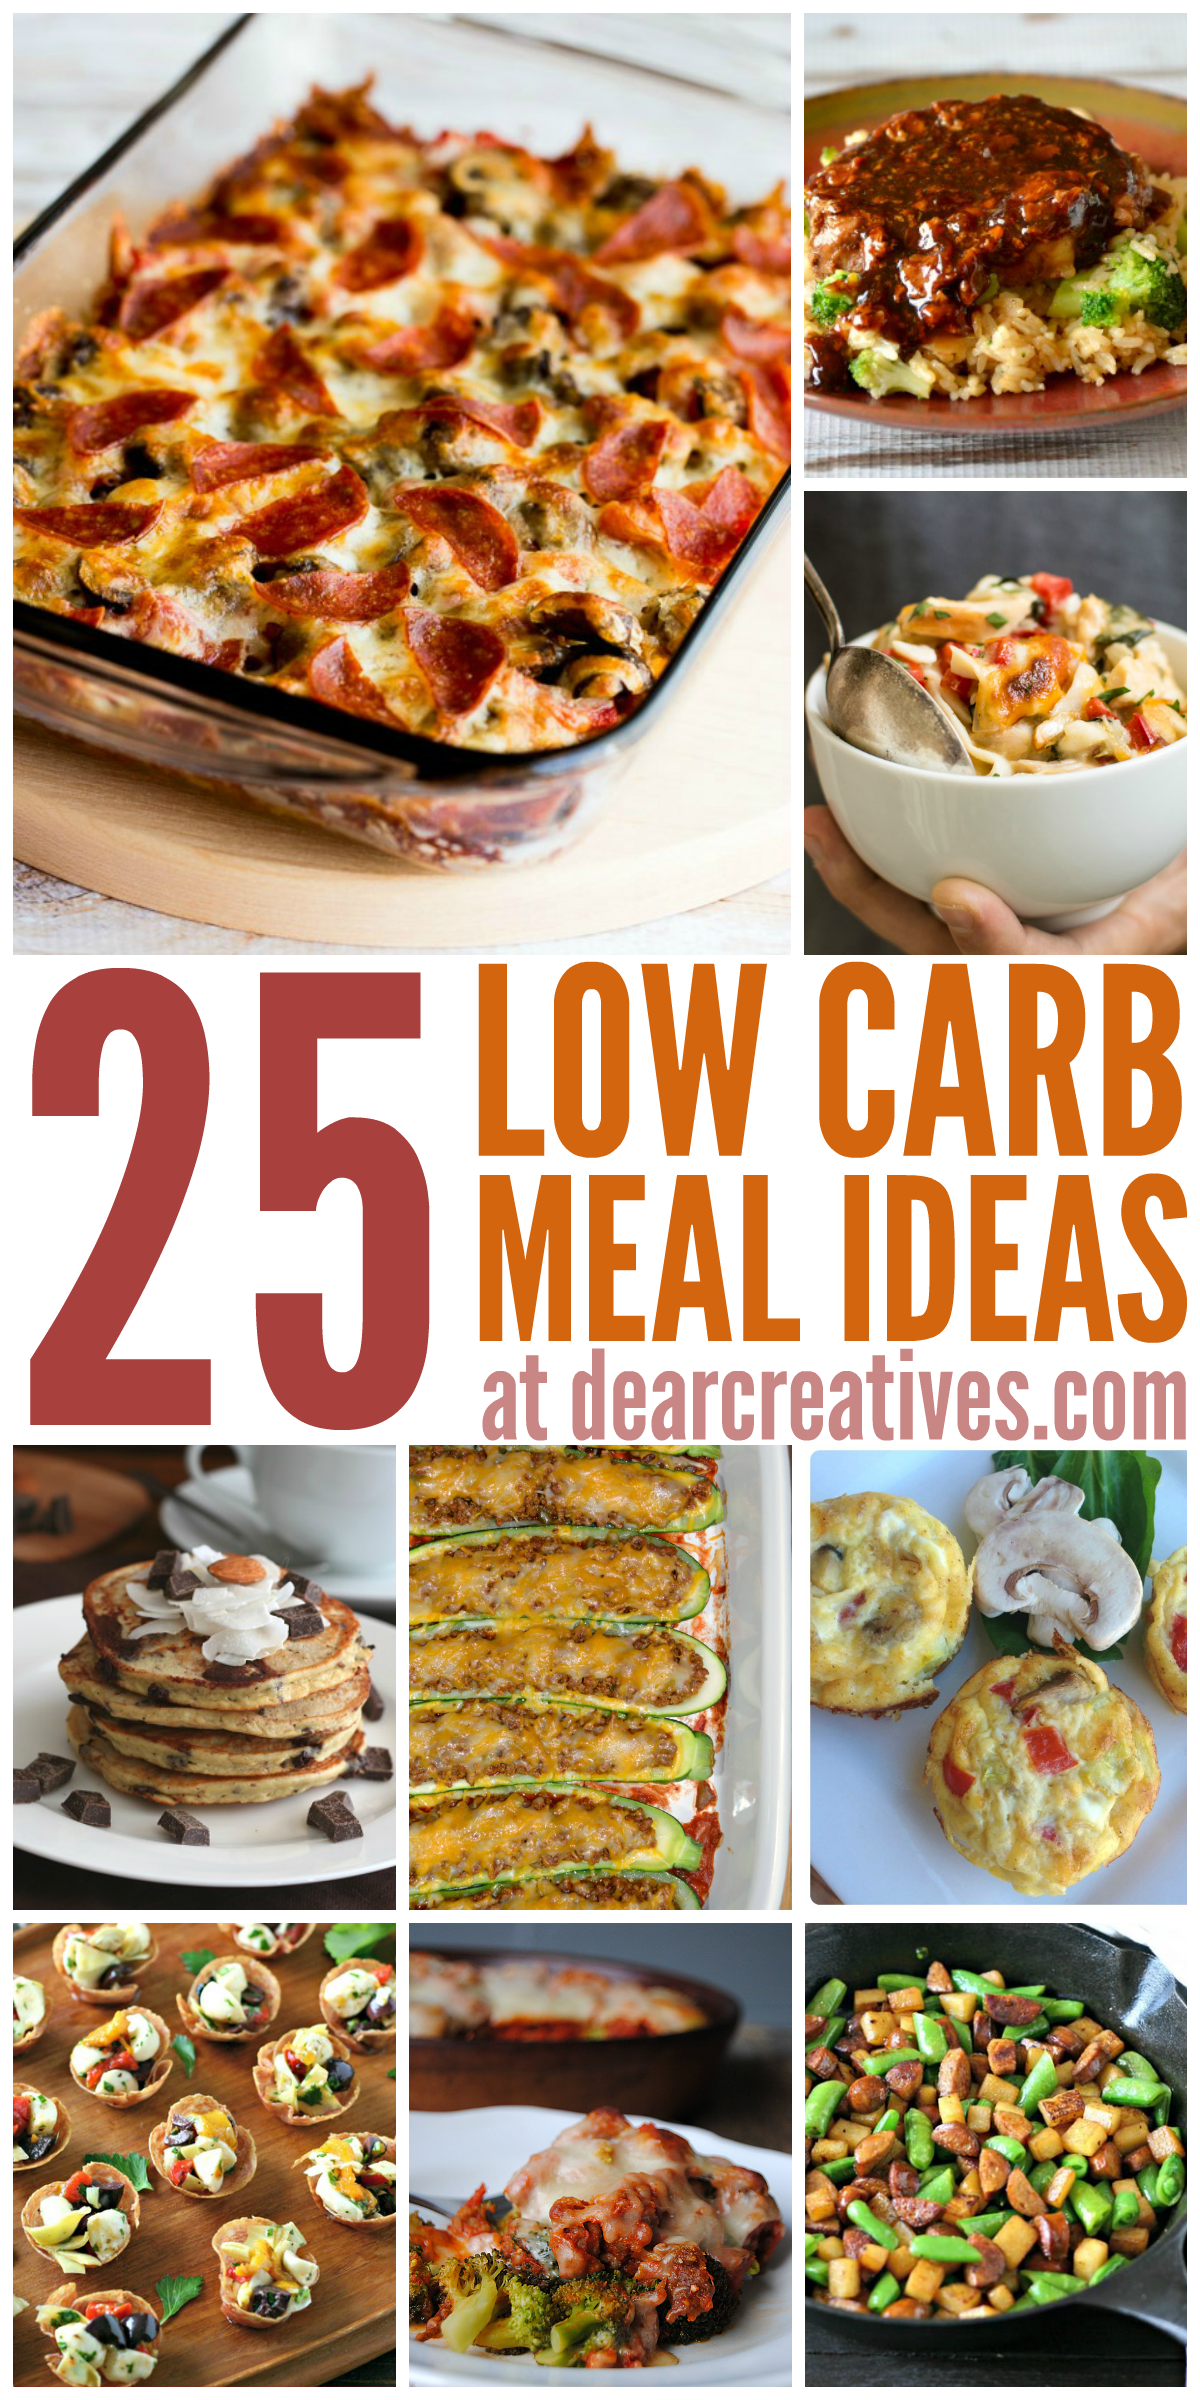 Healthy Recipes: Must Try Low Carb Meal Ideas! #Recipes